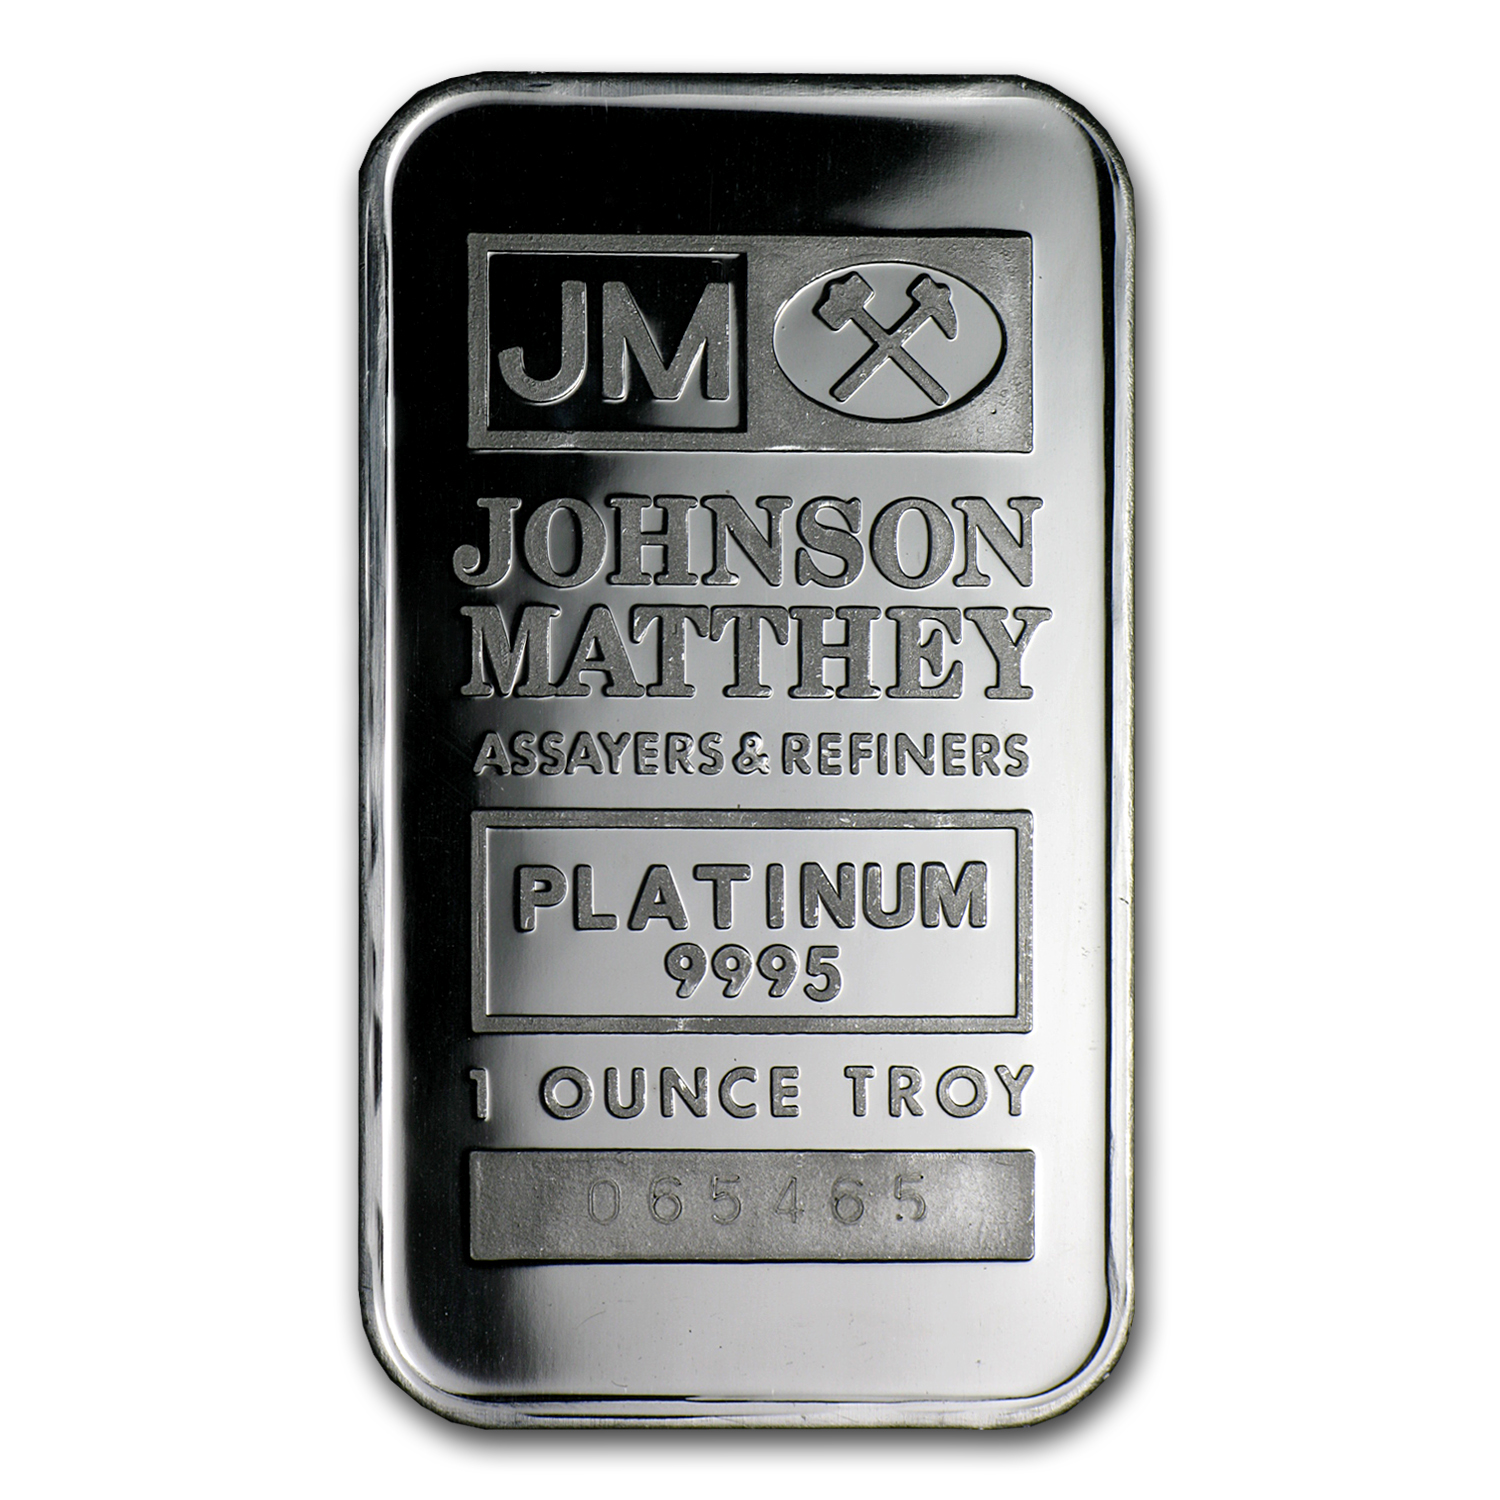 1 oz Platinum Bar - Johnson Matthey (.9995 Fine, No Assay)